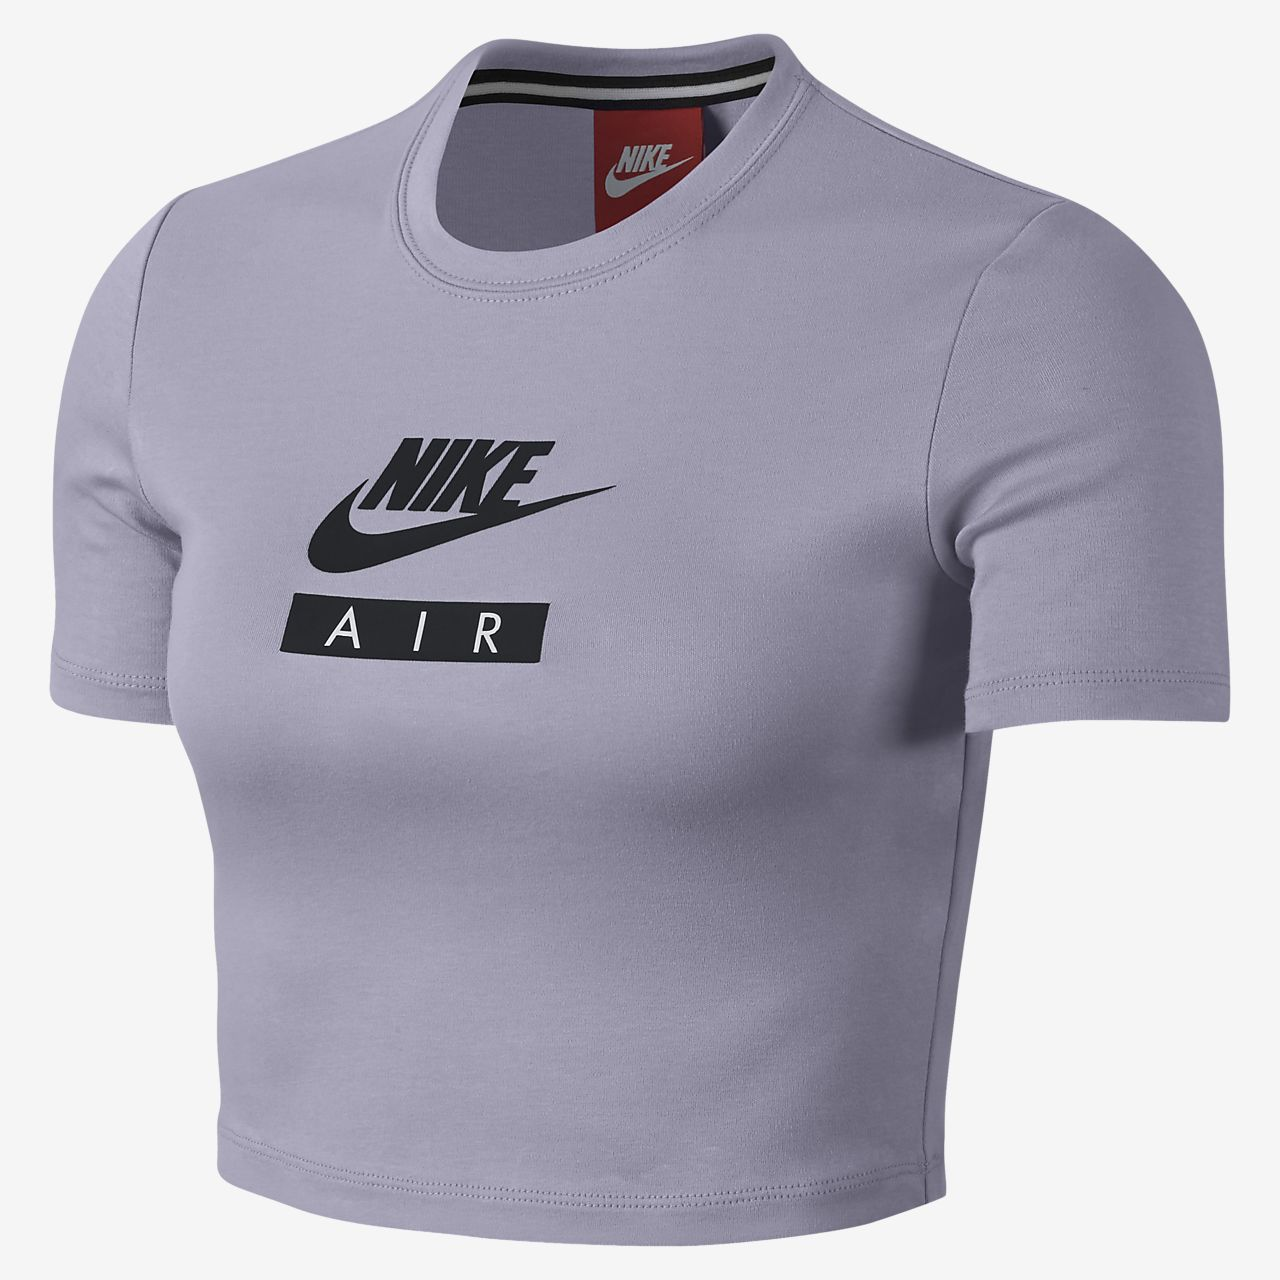 damen shirt nike air